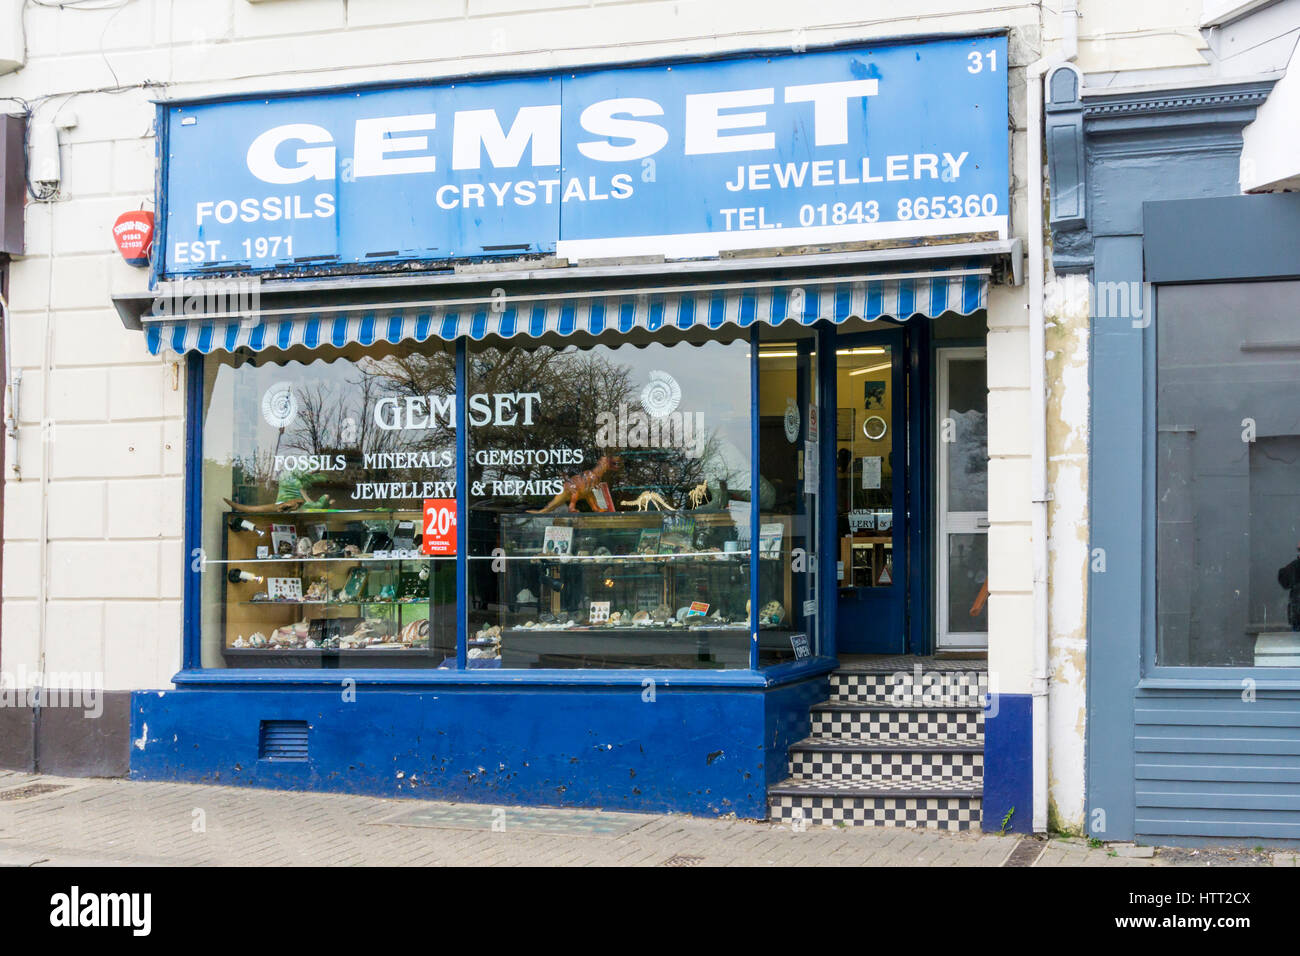 Gemset Fossilien und Mineralien Shop in Broadstairs, Kent. Stockbild